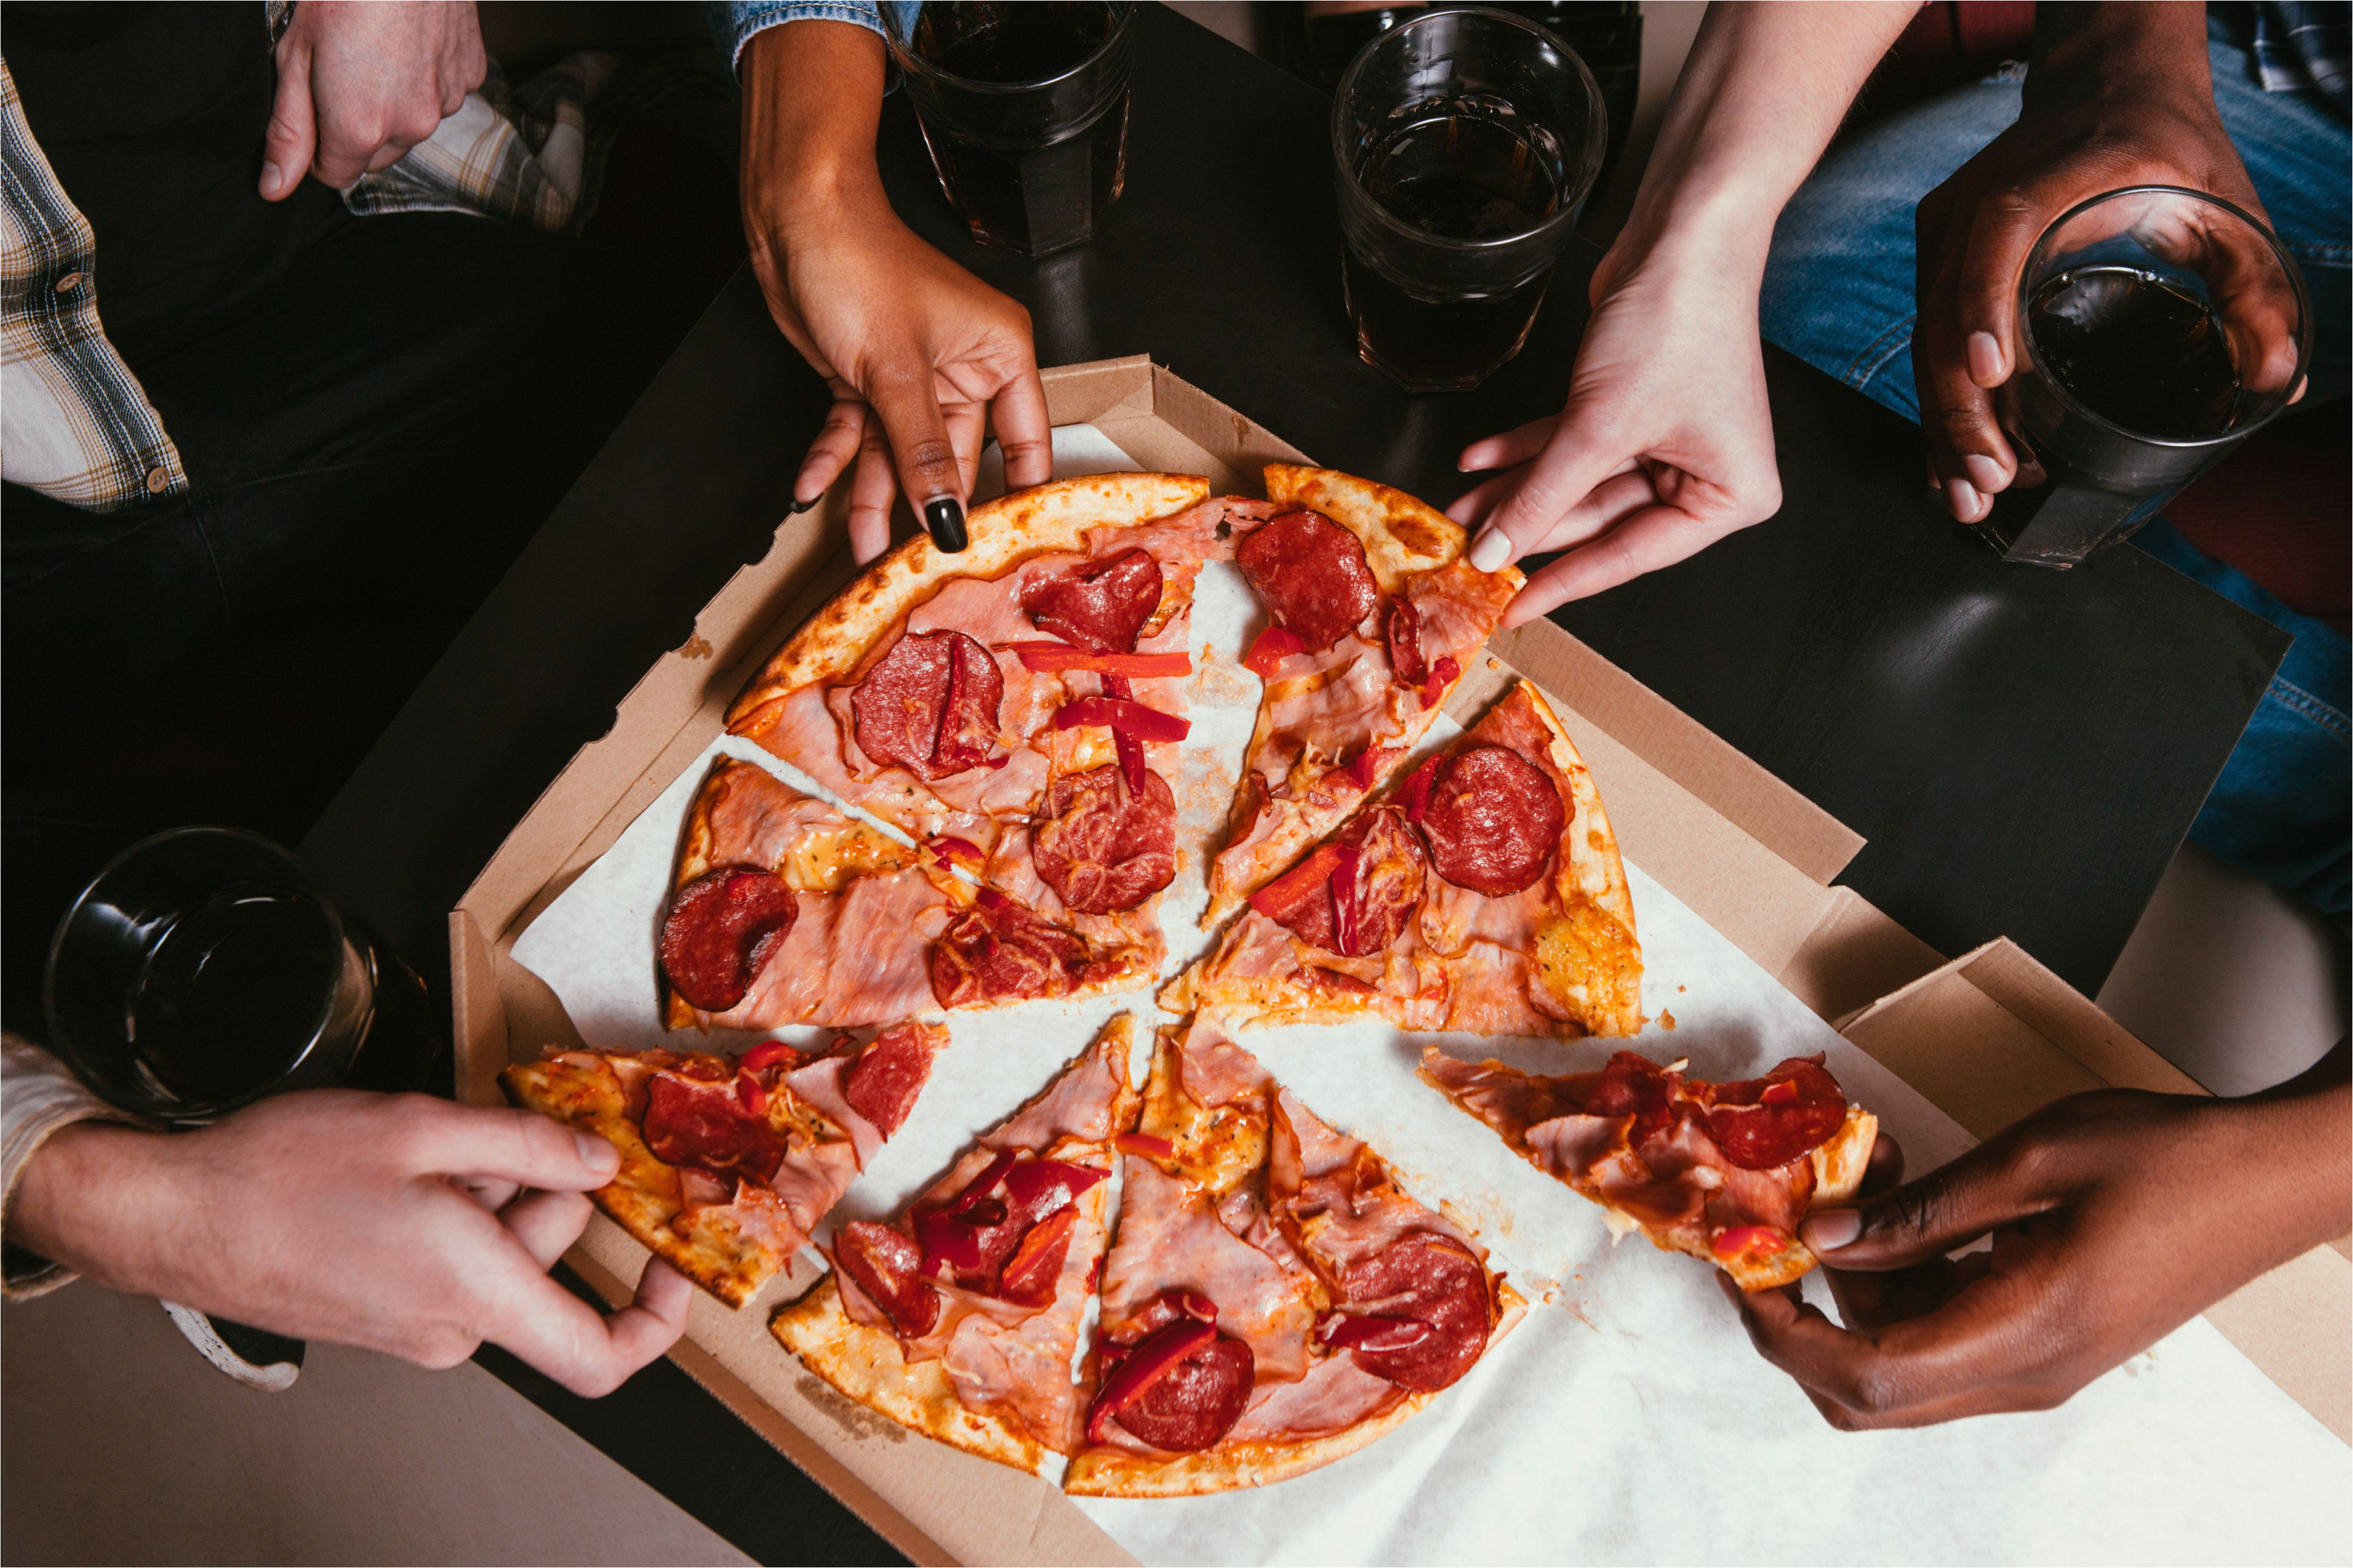 Pizza Hut Delivery Jacksonville Nc How Much to Tip Pizza Delivery Drivers